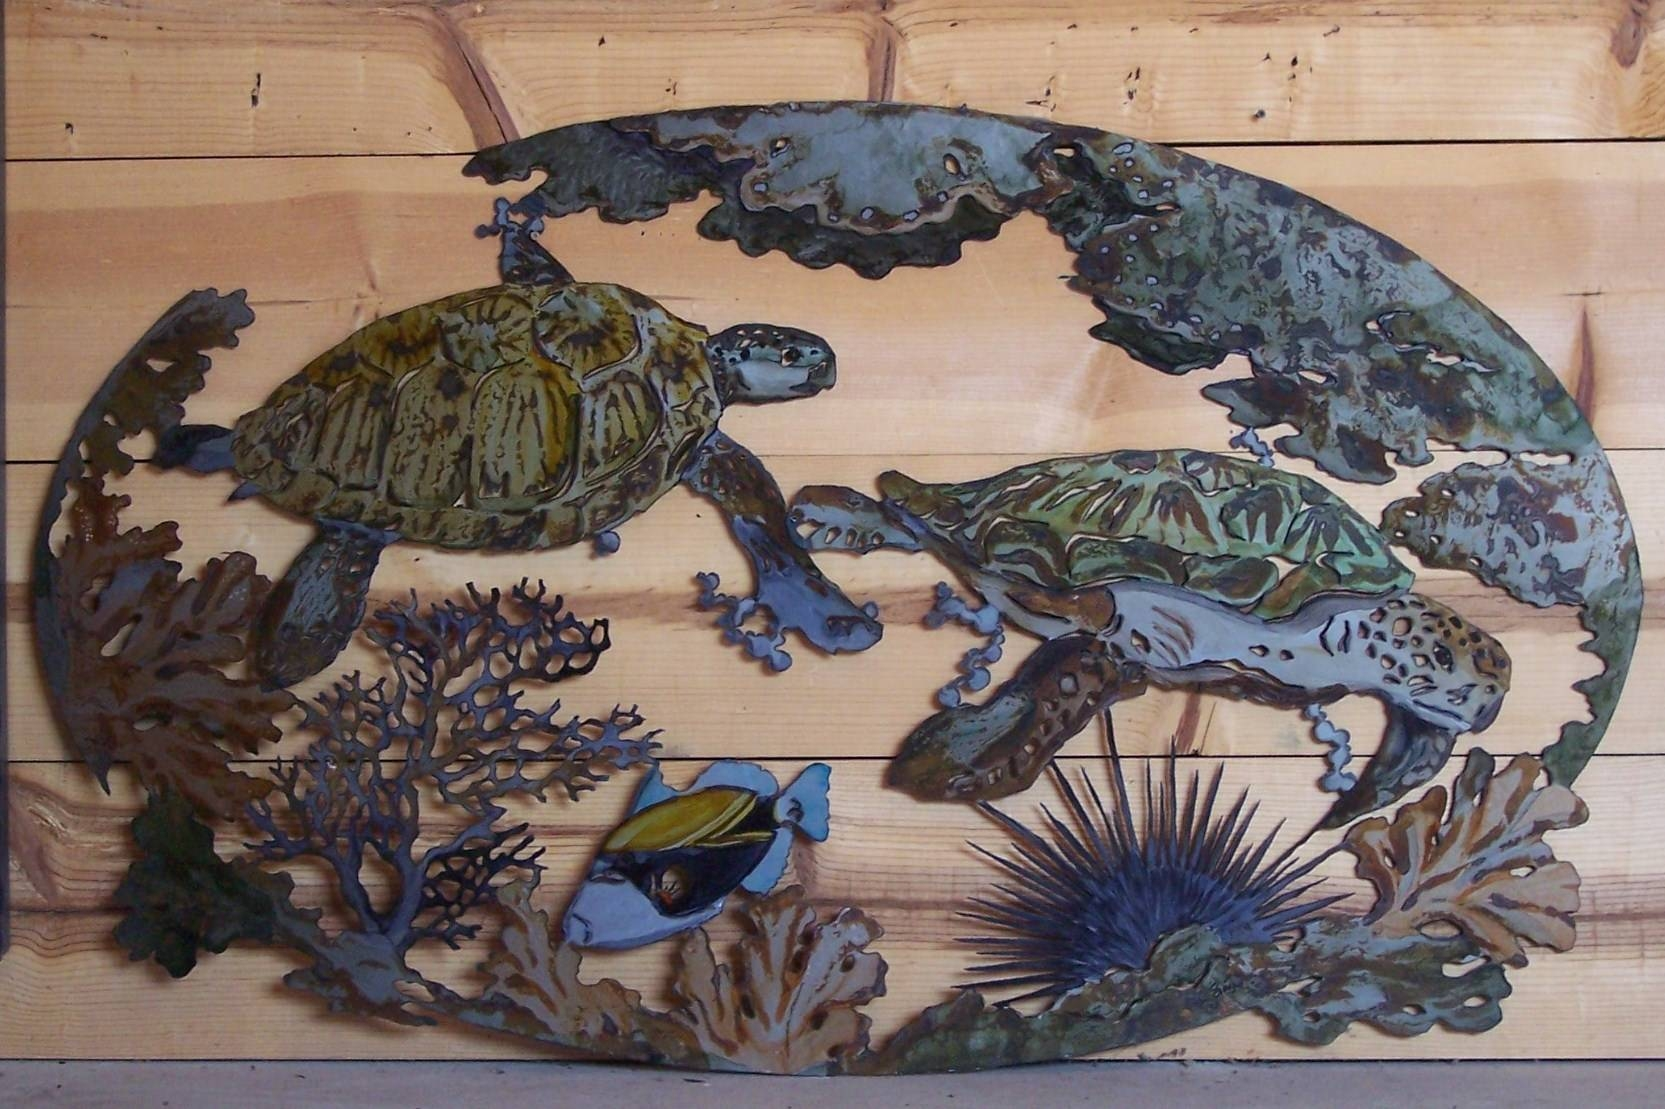 Wall Art Designs: Sea Turtle Wall Art Underwater Fish Coral Throughout Best And Newest Sea Turtle Metal Wall Art (View 16 of 20)